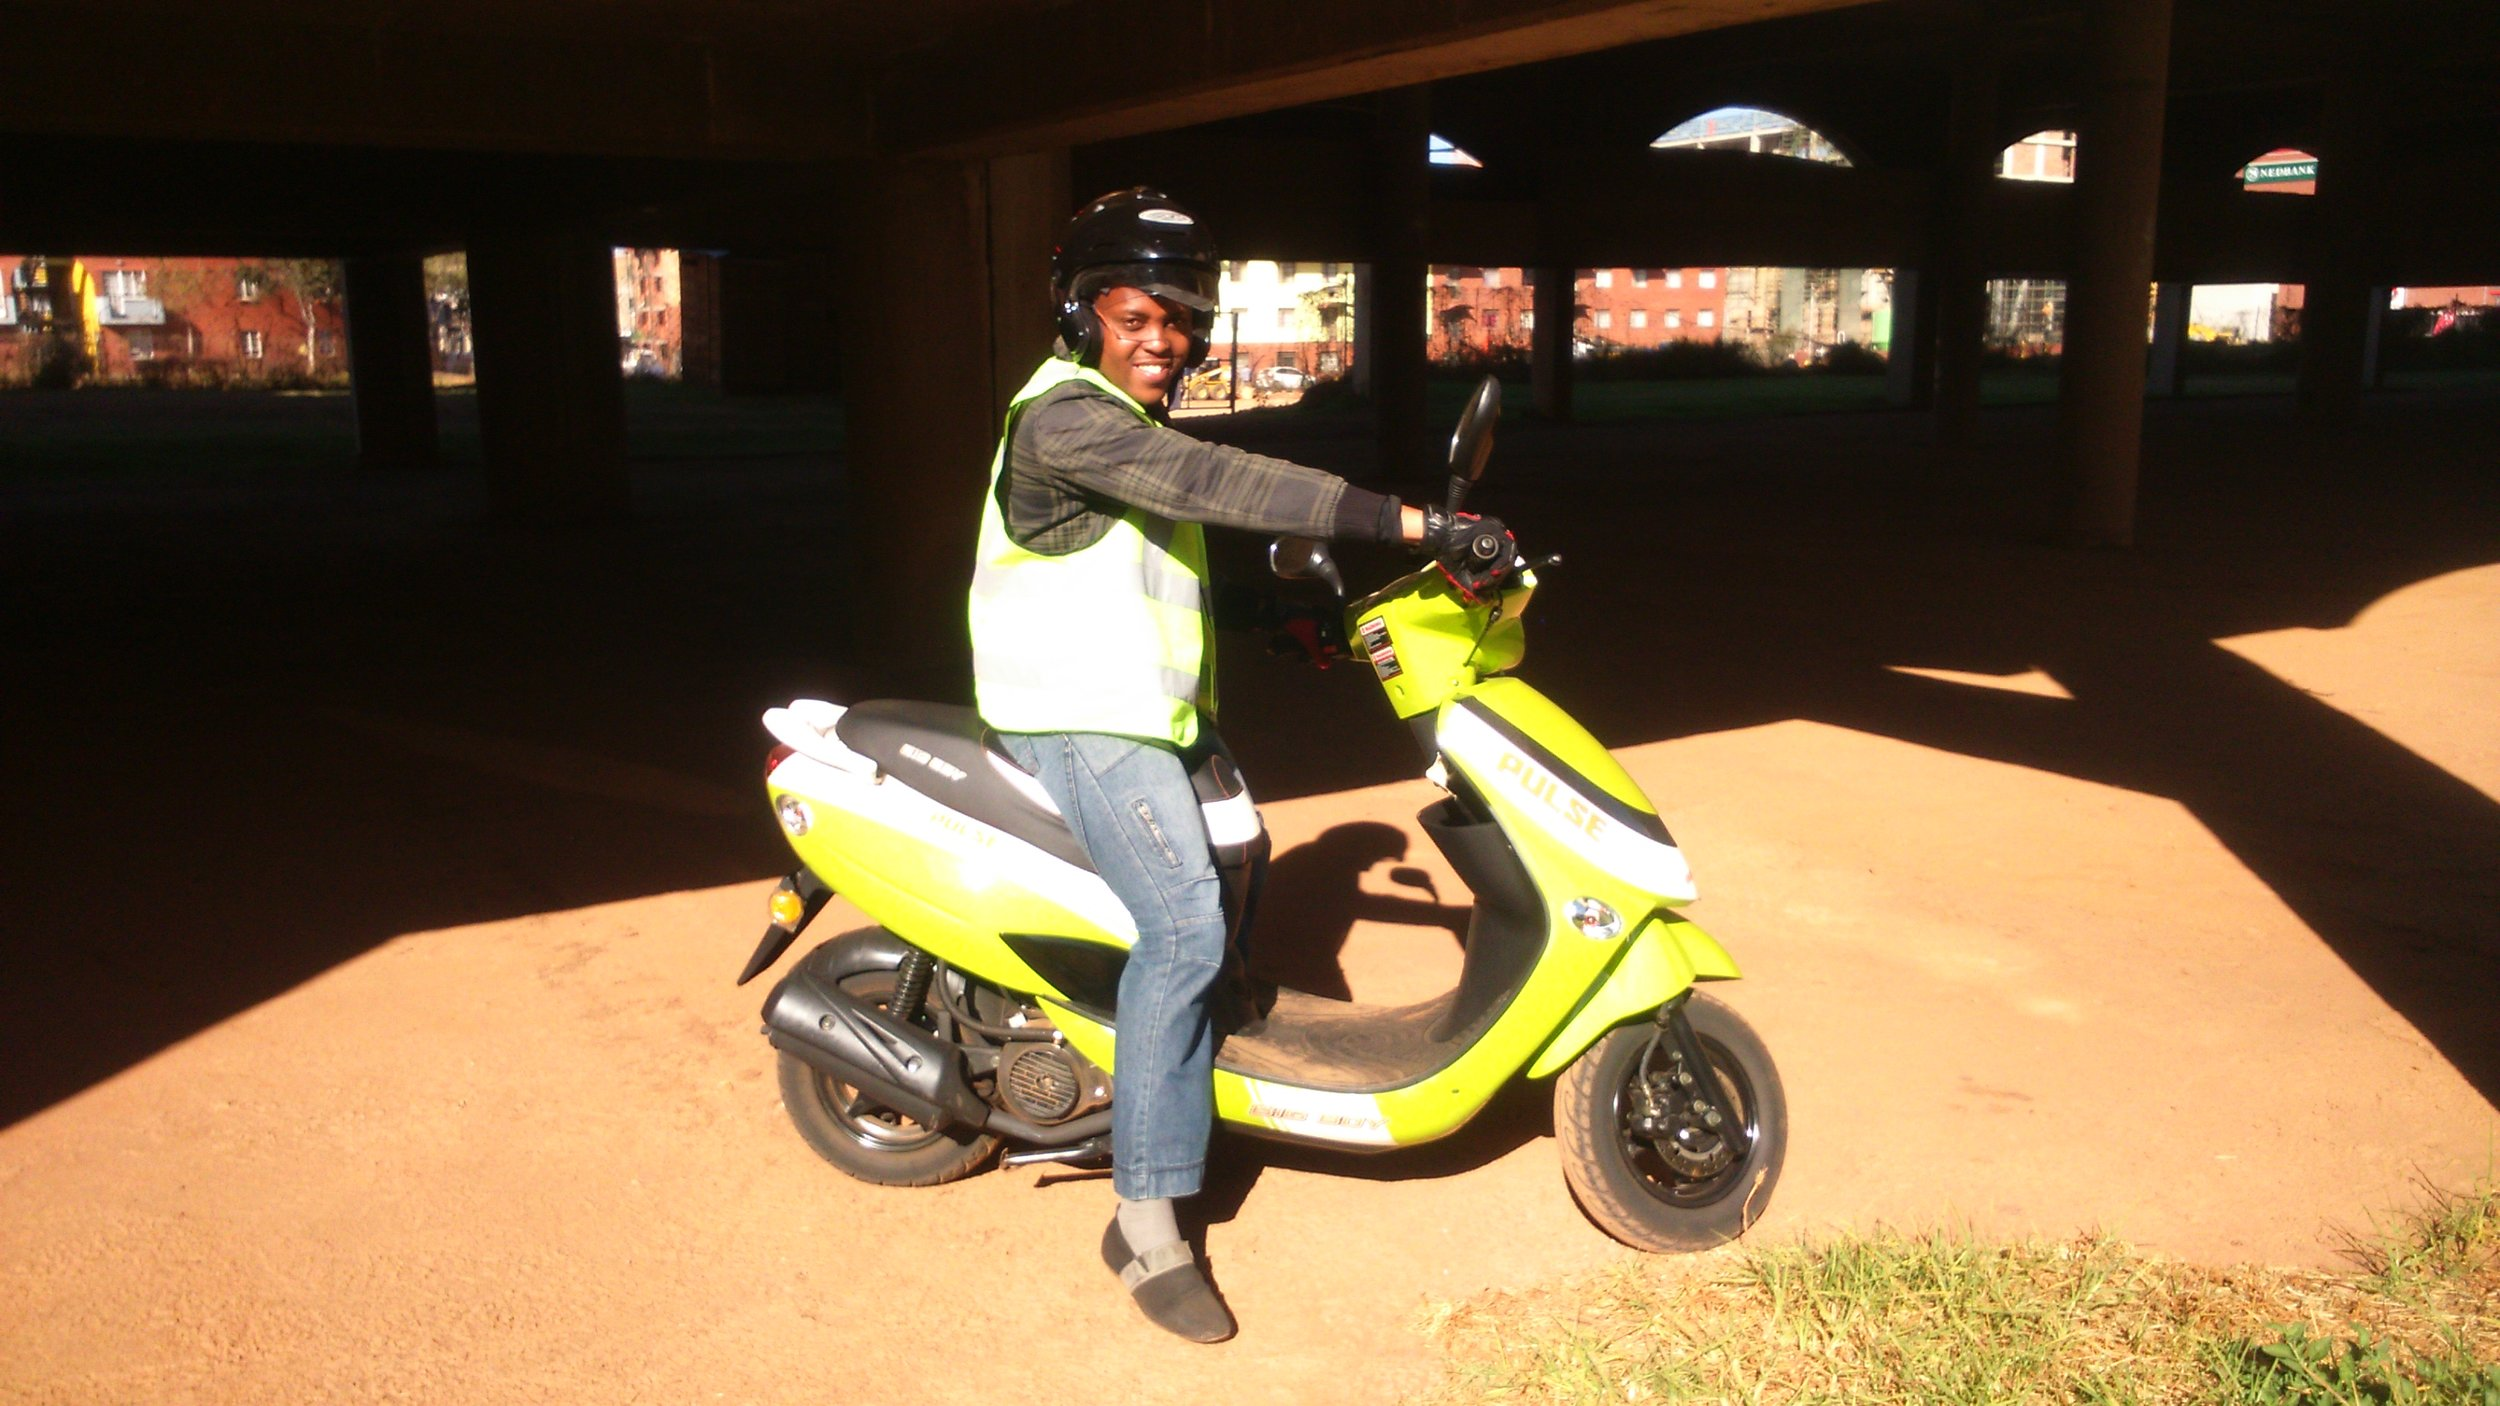 LEARN TO RIDE - Learn to ride and get a job with a company that has their own fleet of bikes